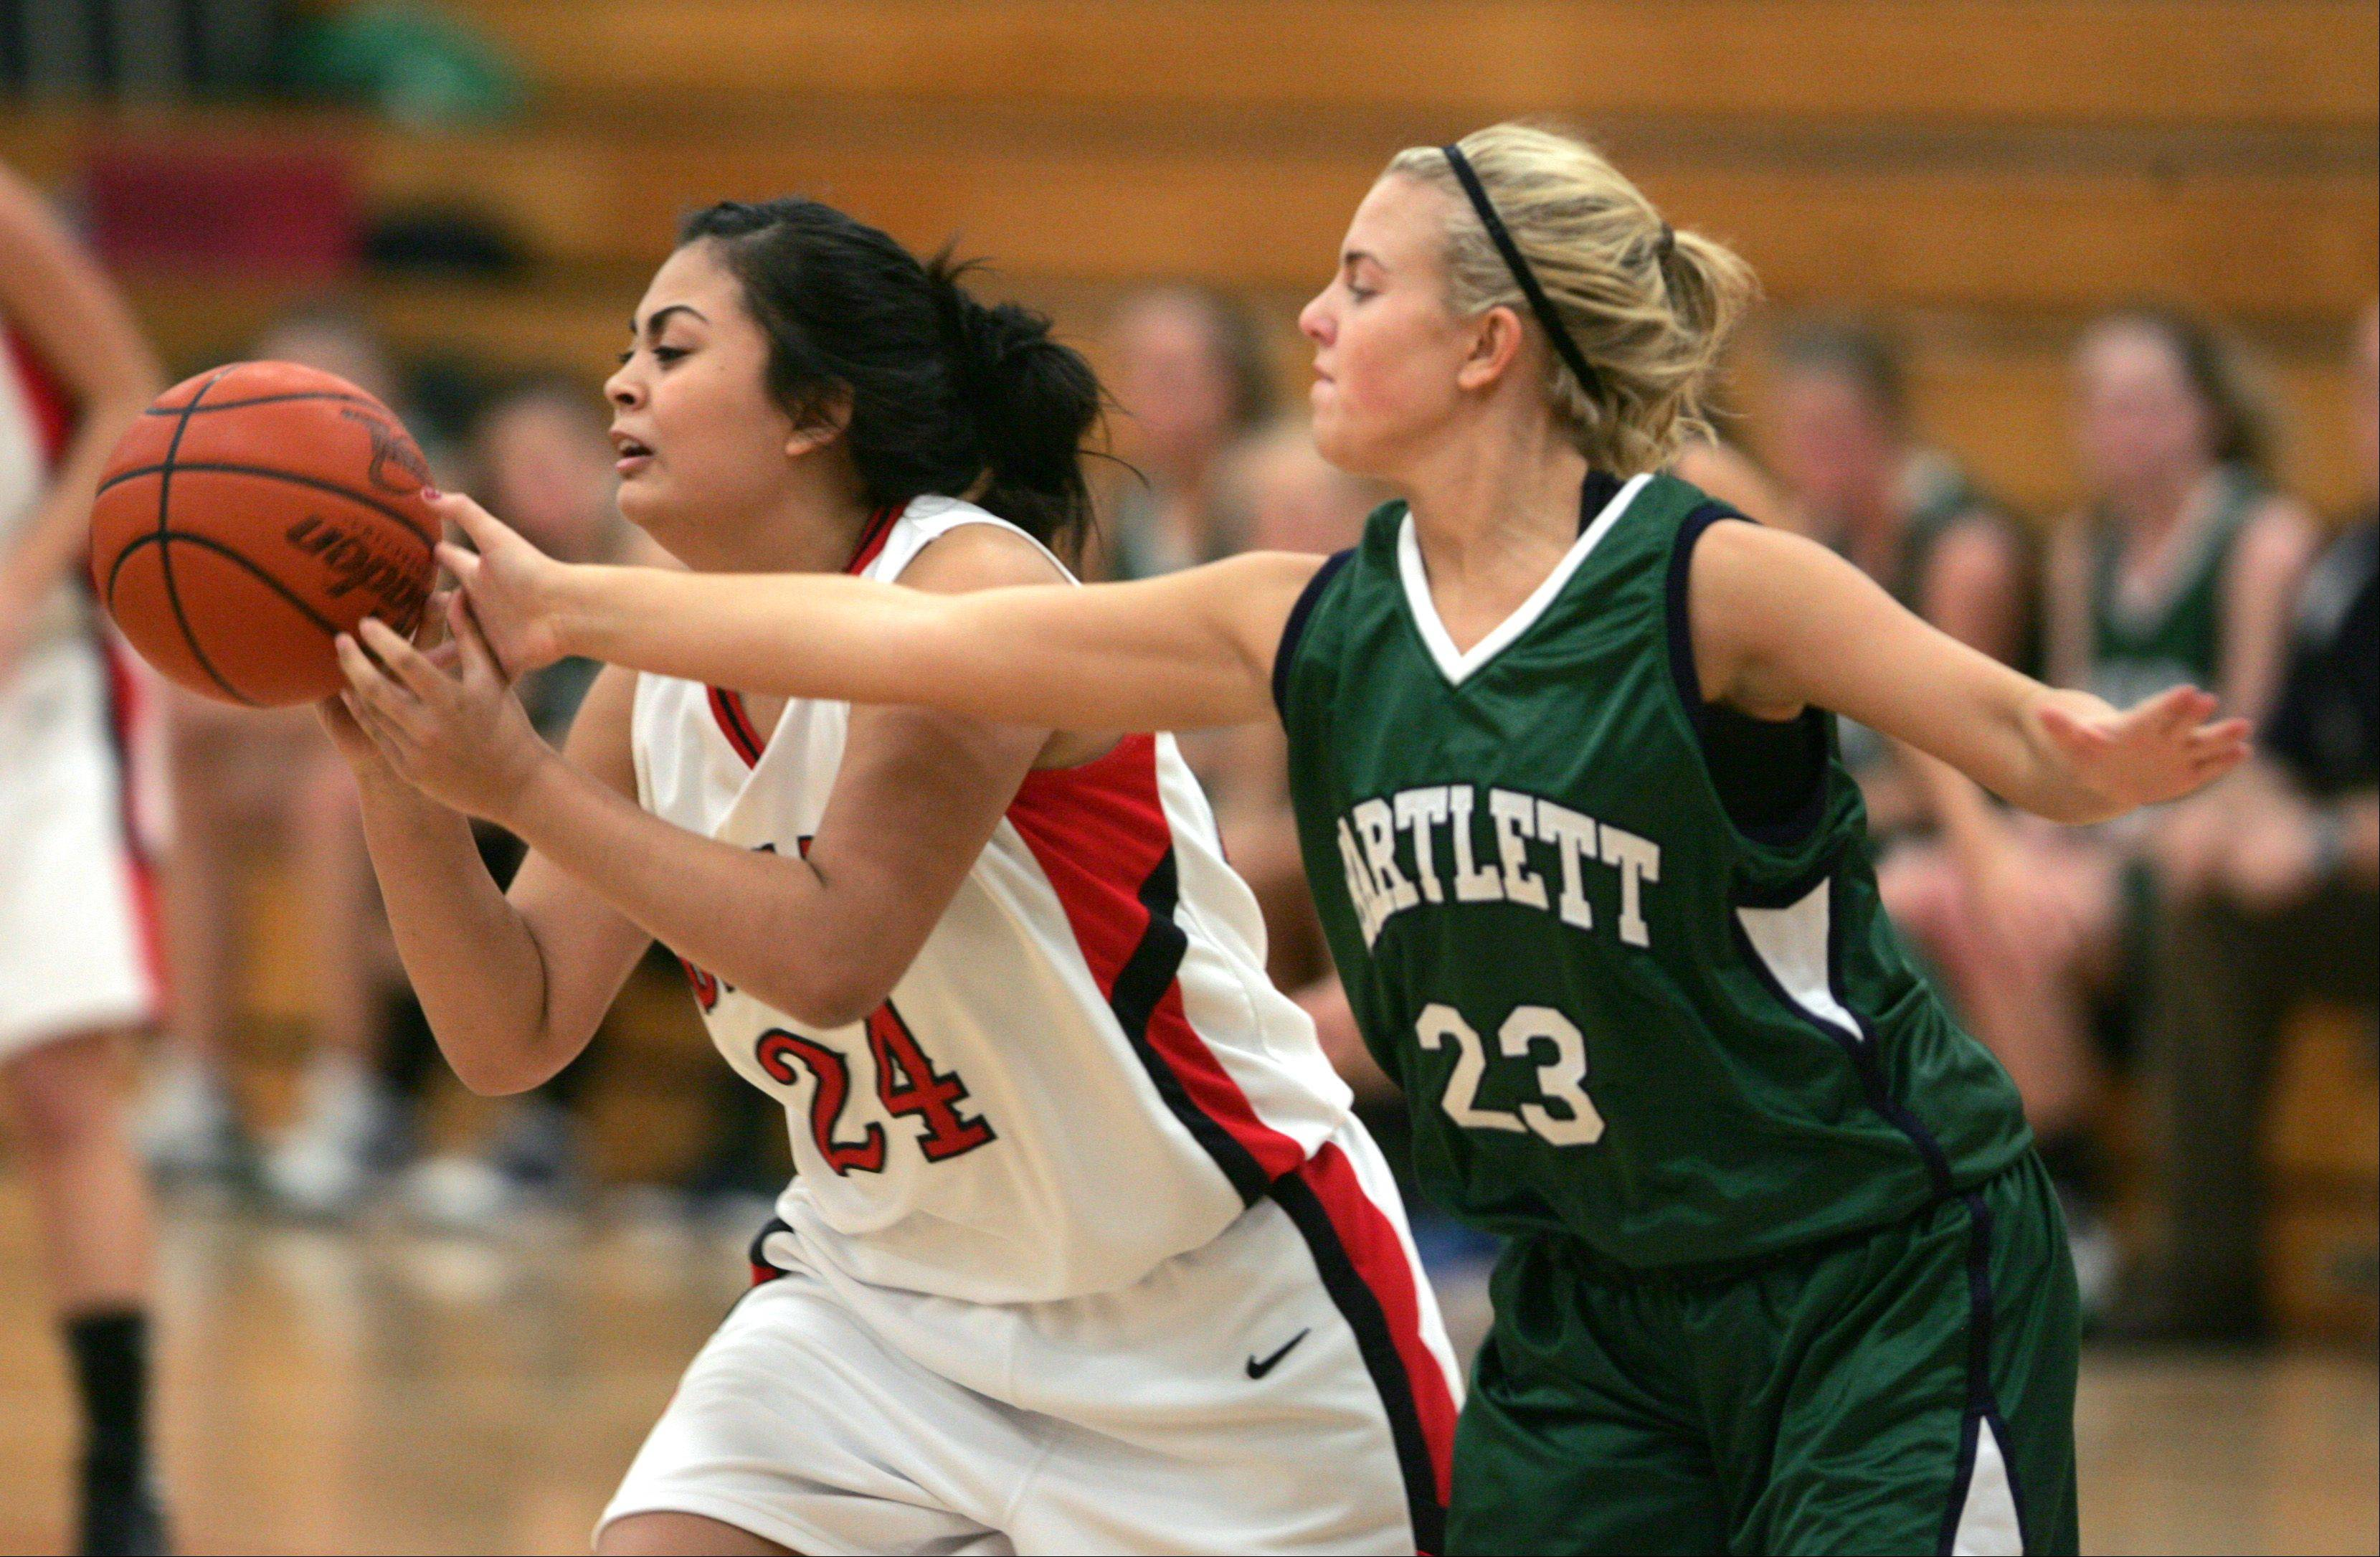 Benet's Eden Olson, left, battles Bartlett's Ashley Johnson during Friday's 2011 Tip-Off Tournament basketball game in Lisle.